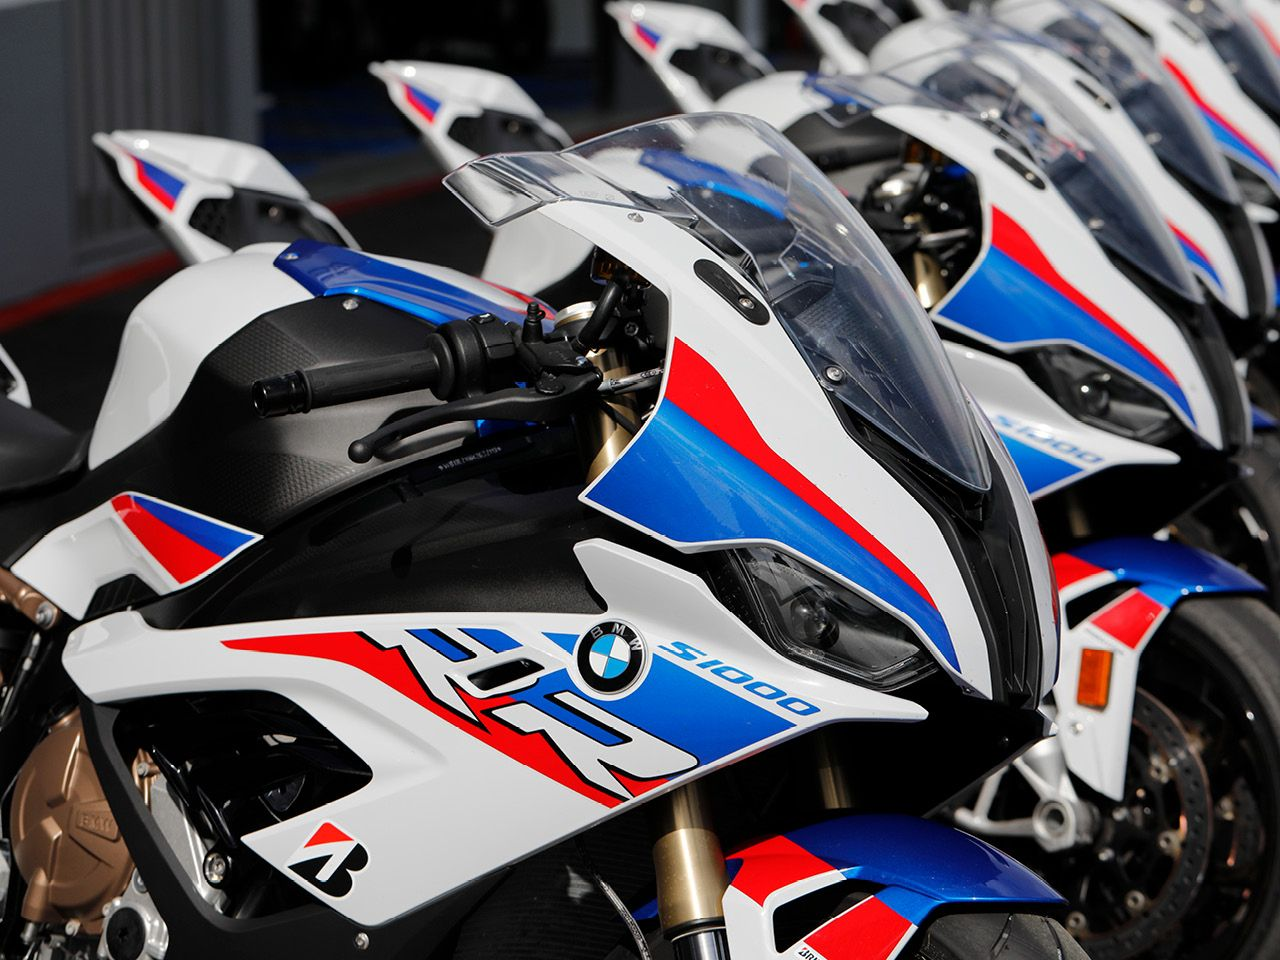 Bmw Insurance That S Recommended By S1000rr Forum Members Bemoto